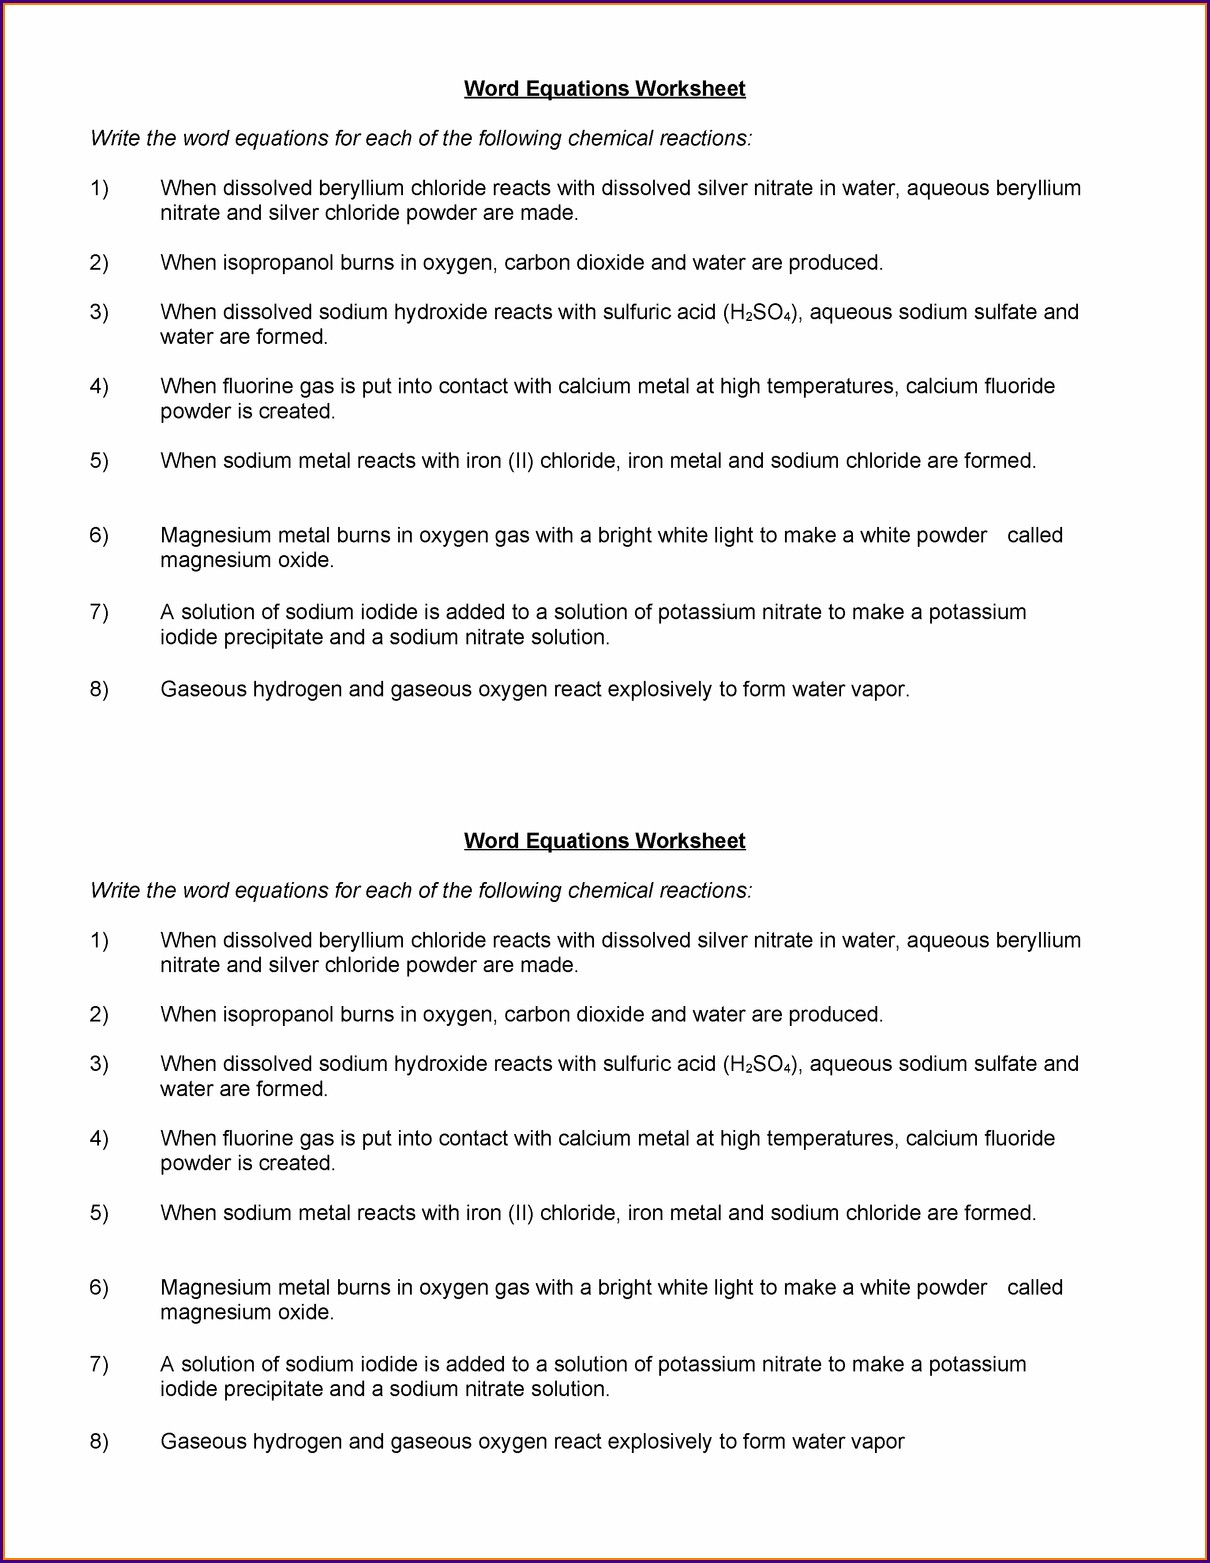 Chemistry Word Equations Worksheet